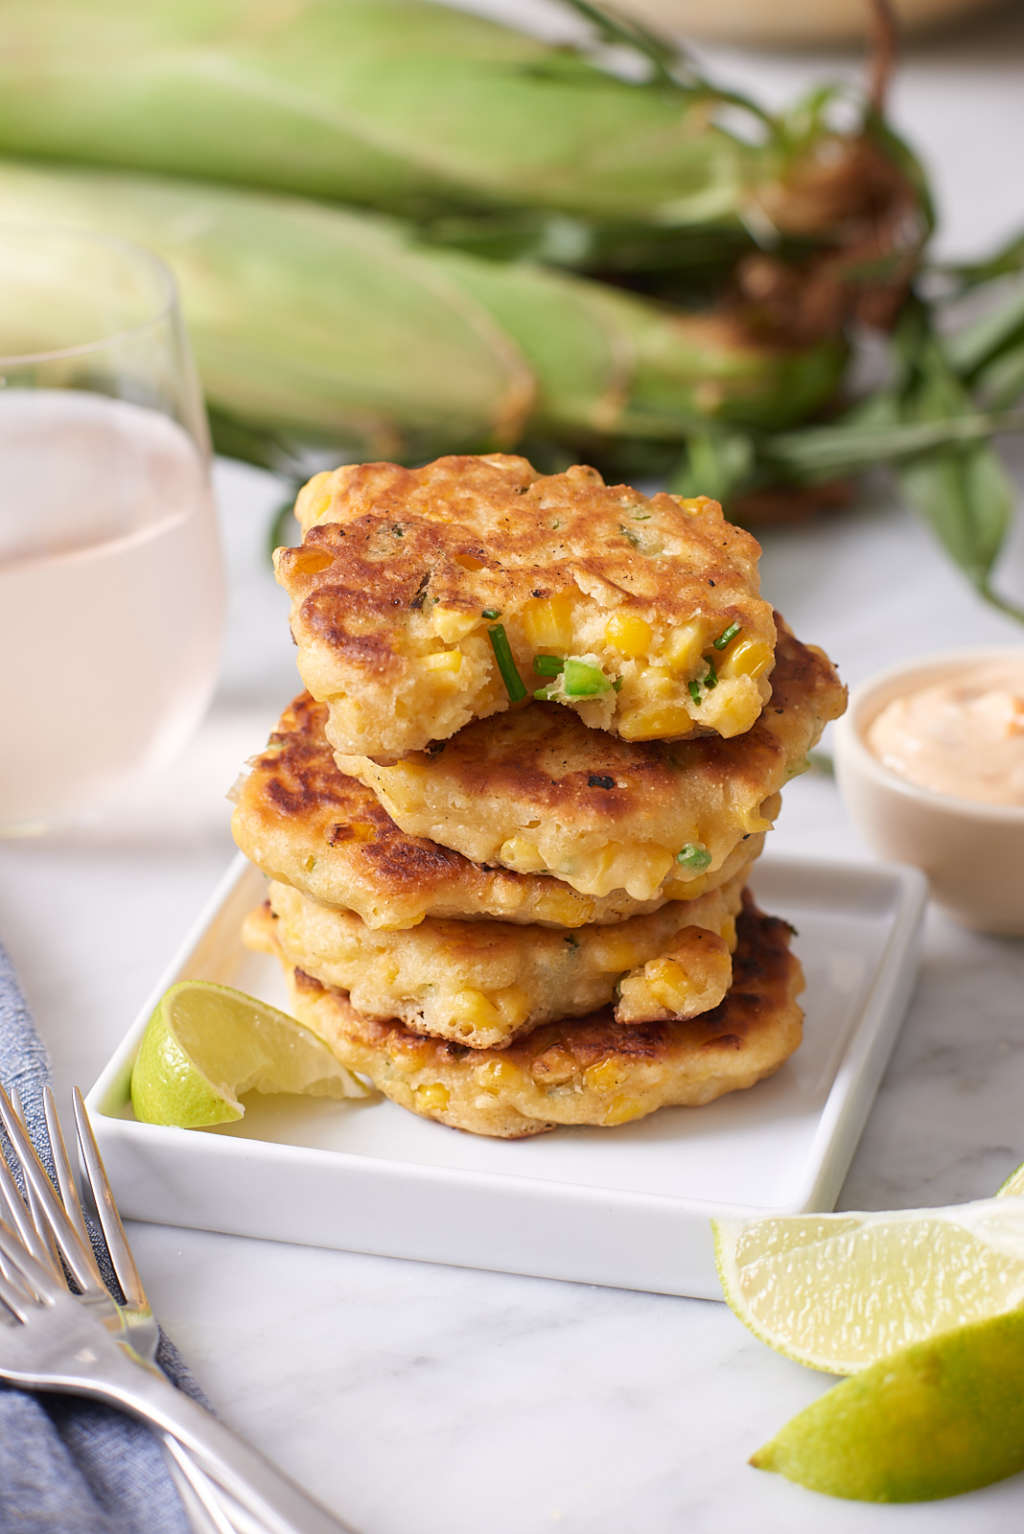 How To Make Easy Pan-Fried Corn Cakes